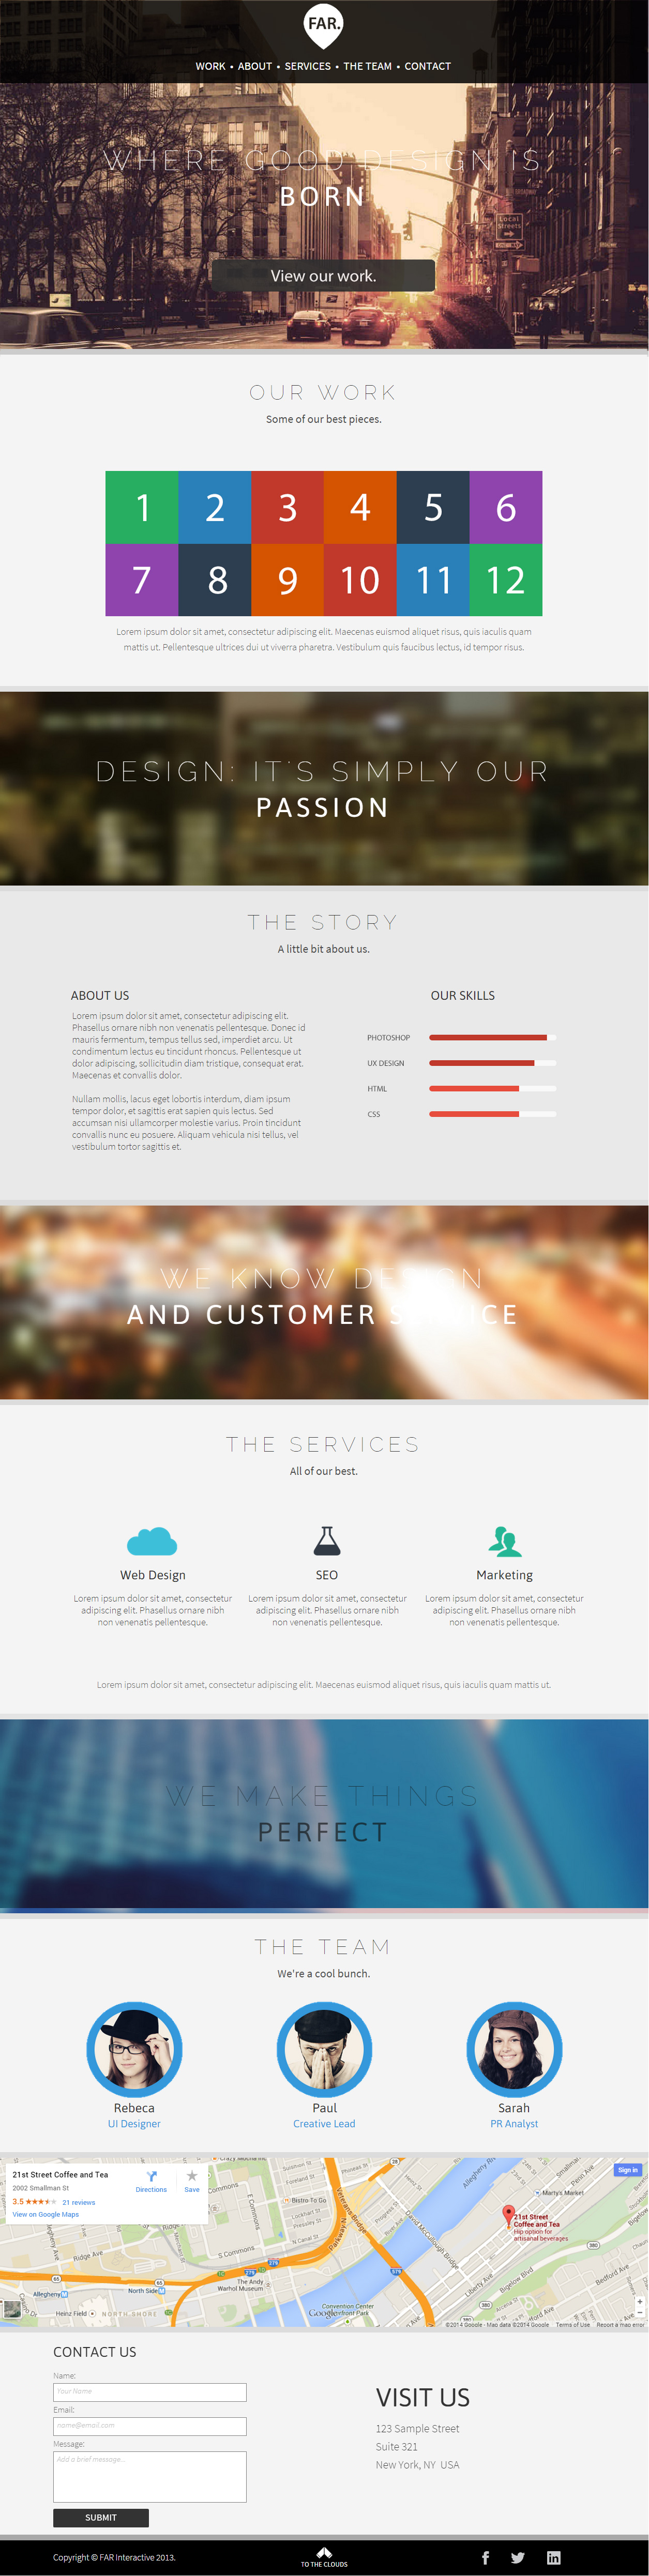 25+ Best Premium Muse Templates in 2014 - Responsive Miracle